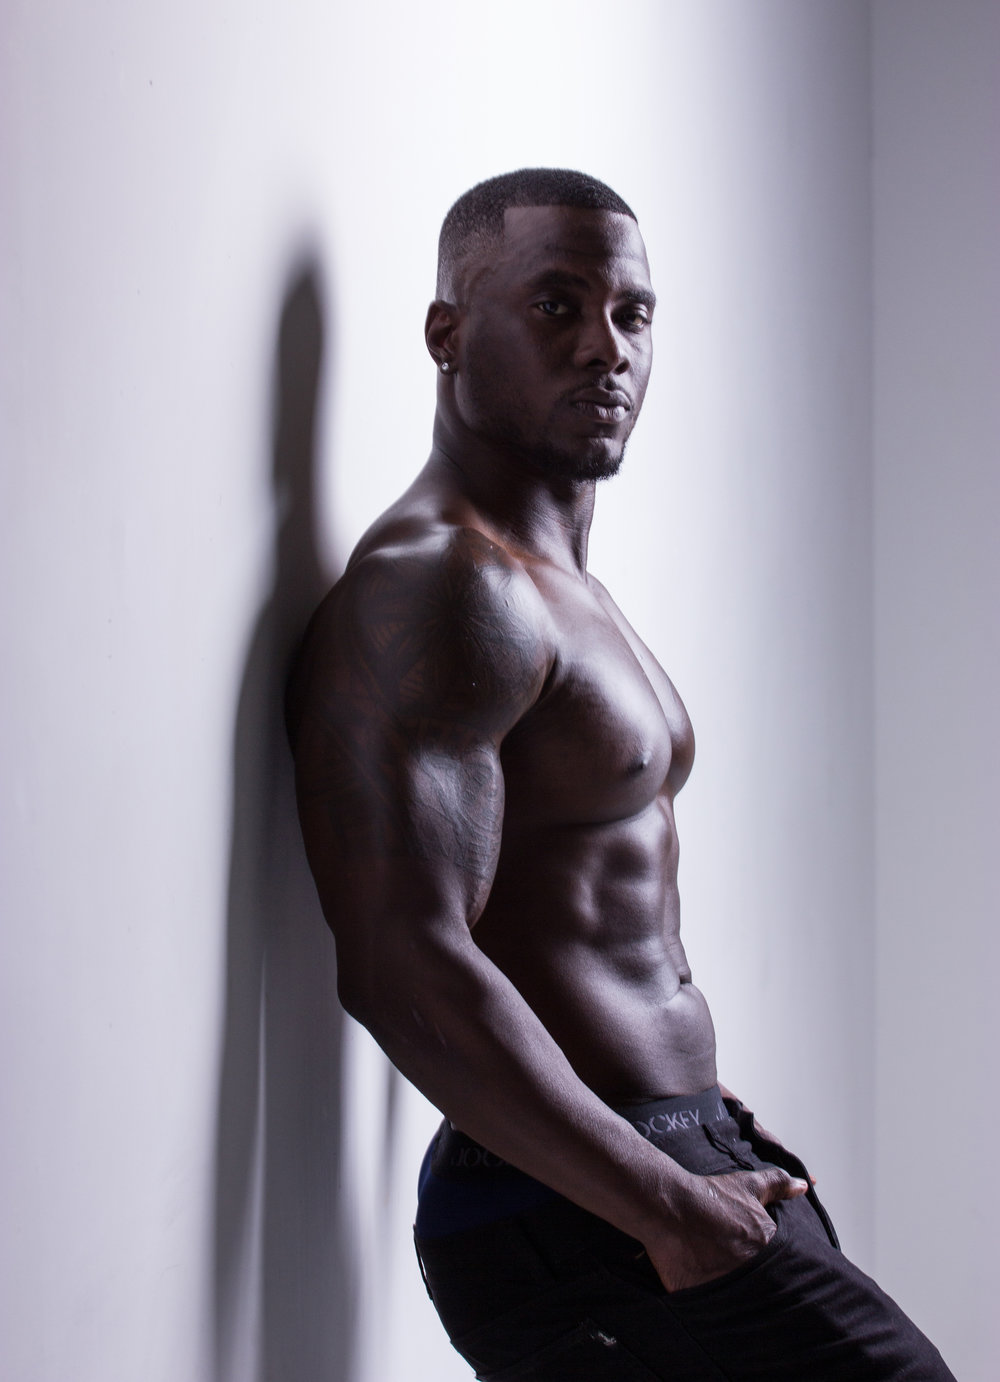 fitness-shoot-moments-chamber-photography-antoine-hart.jpg